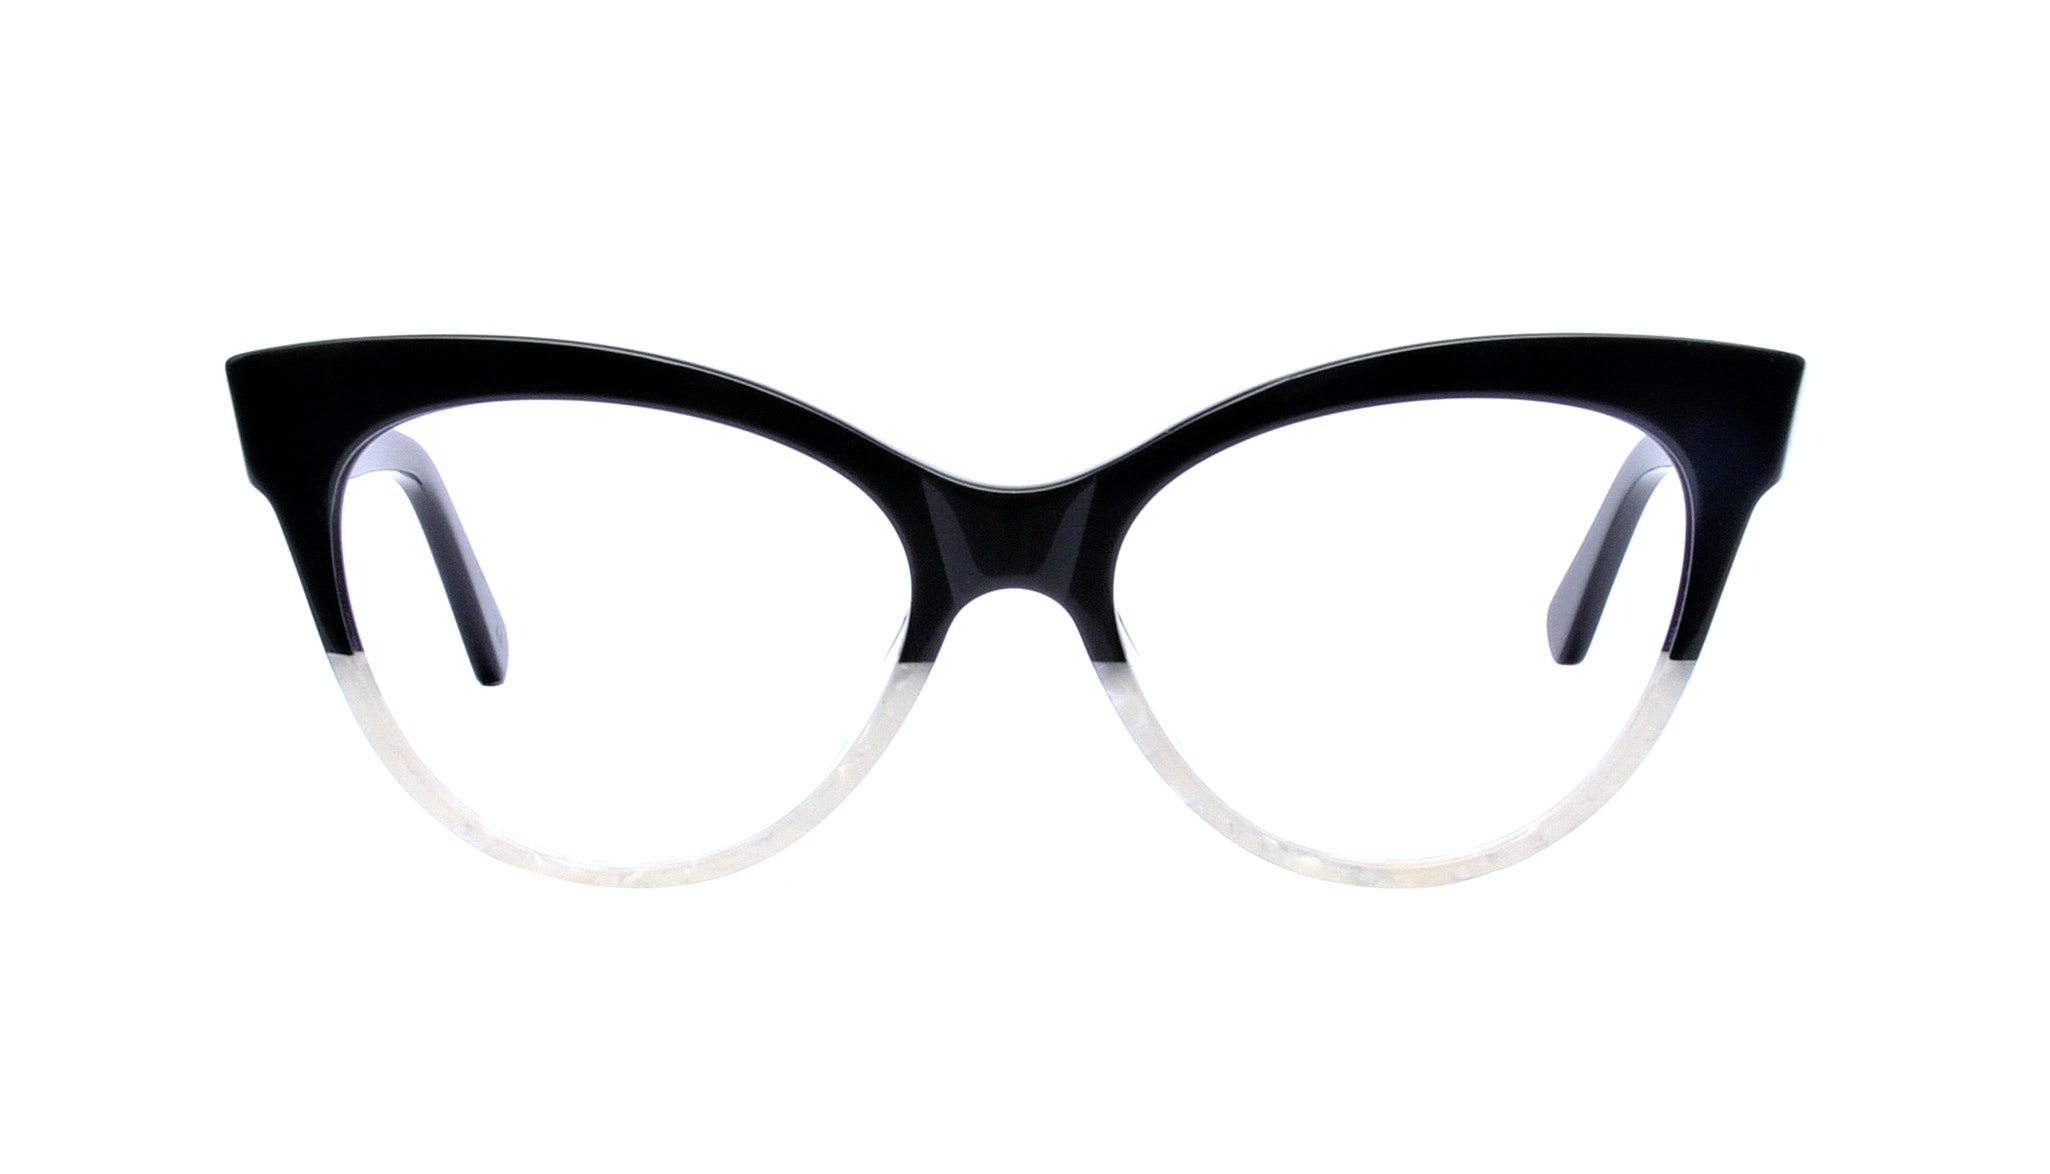 Affordable Fashion Glasses Cat Eye Eyeglasses Women SkunkBoy Panda Pearl